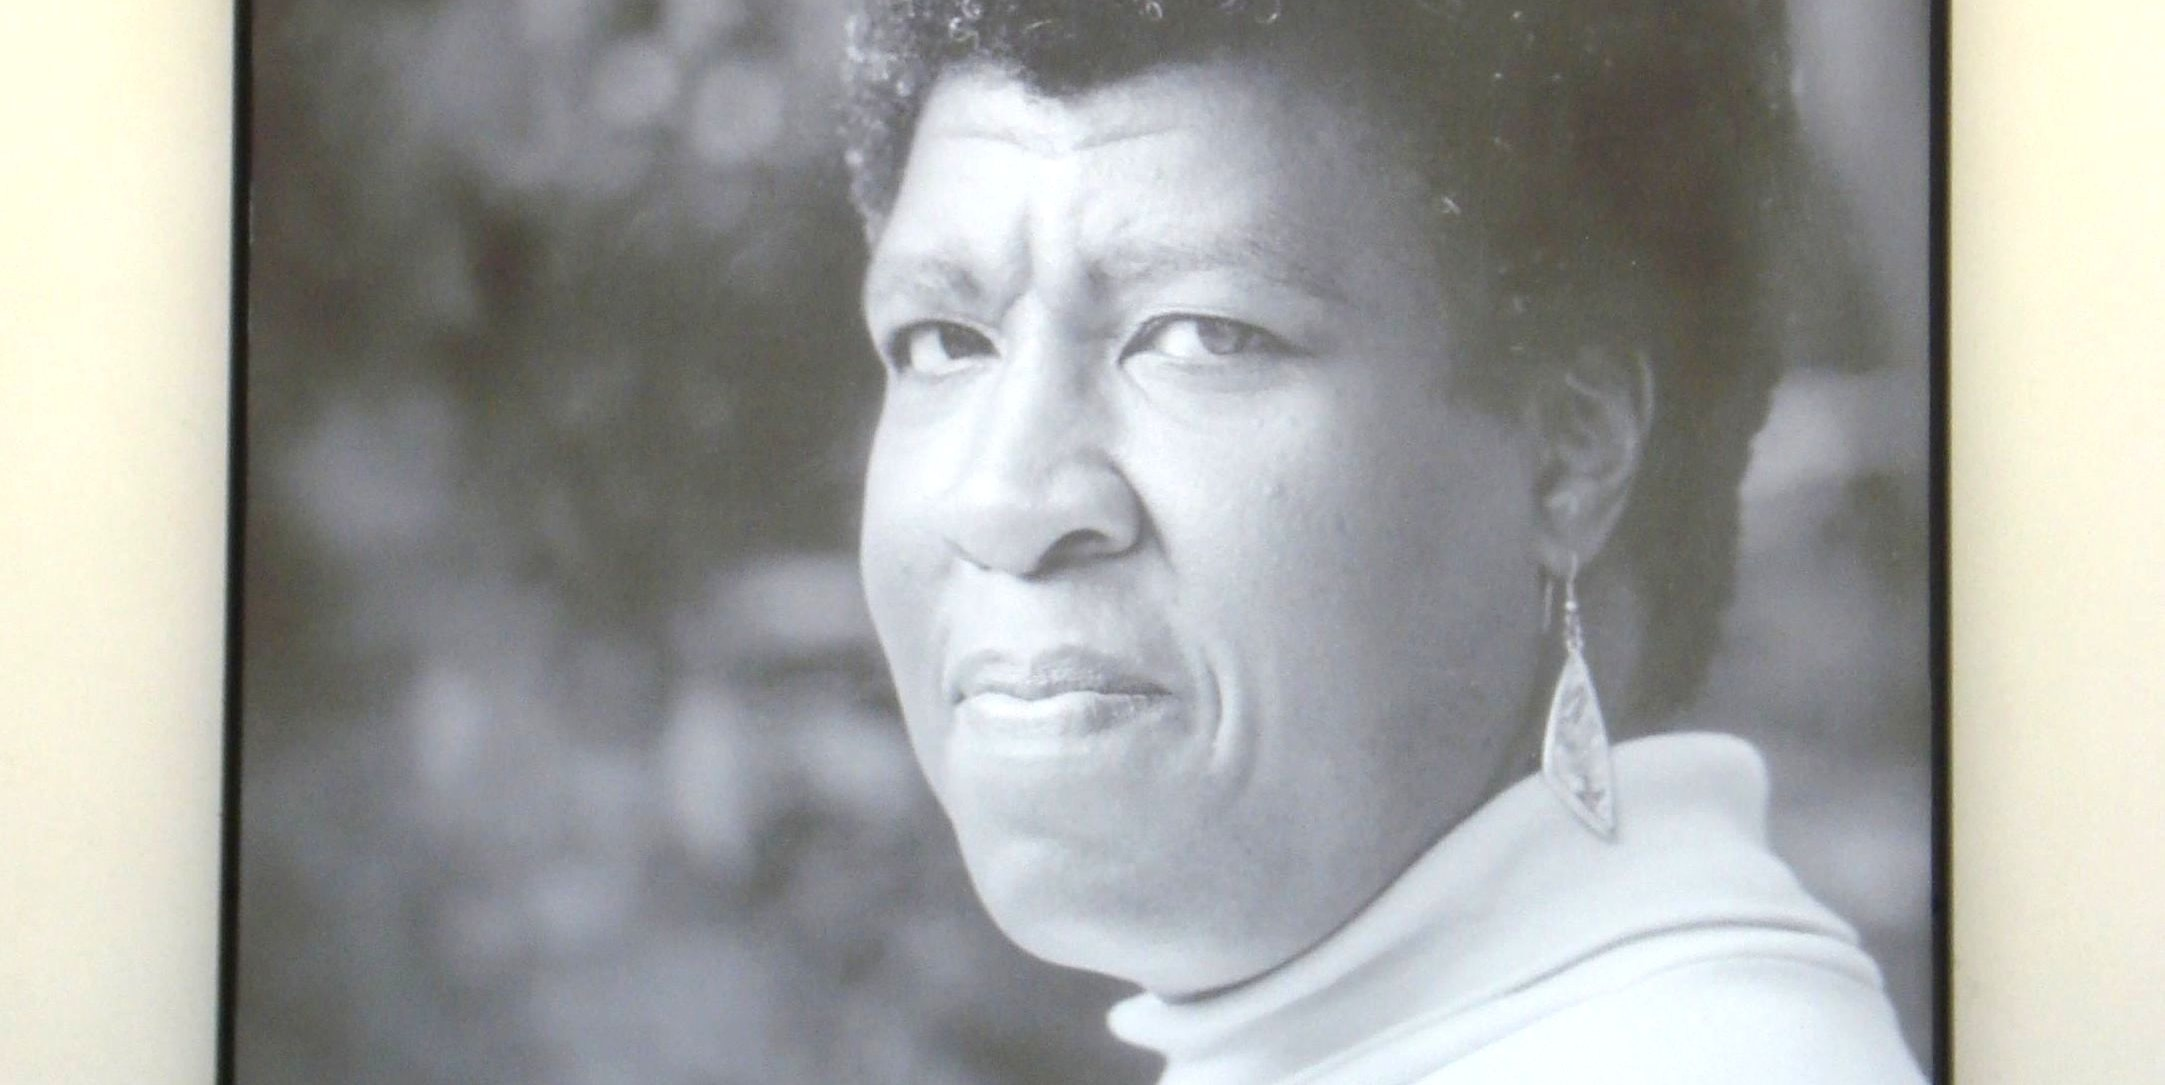 Octavia E. Butler: How Science-Fiction Author Battled Racism in Her Works